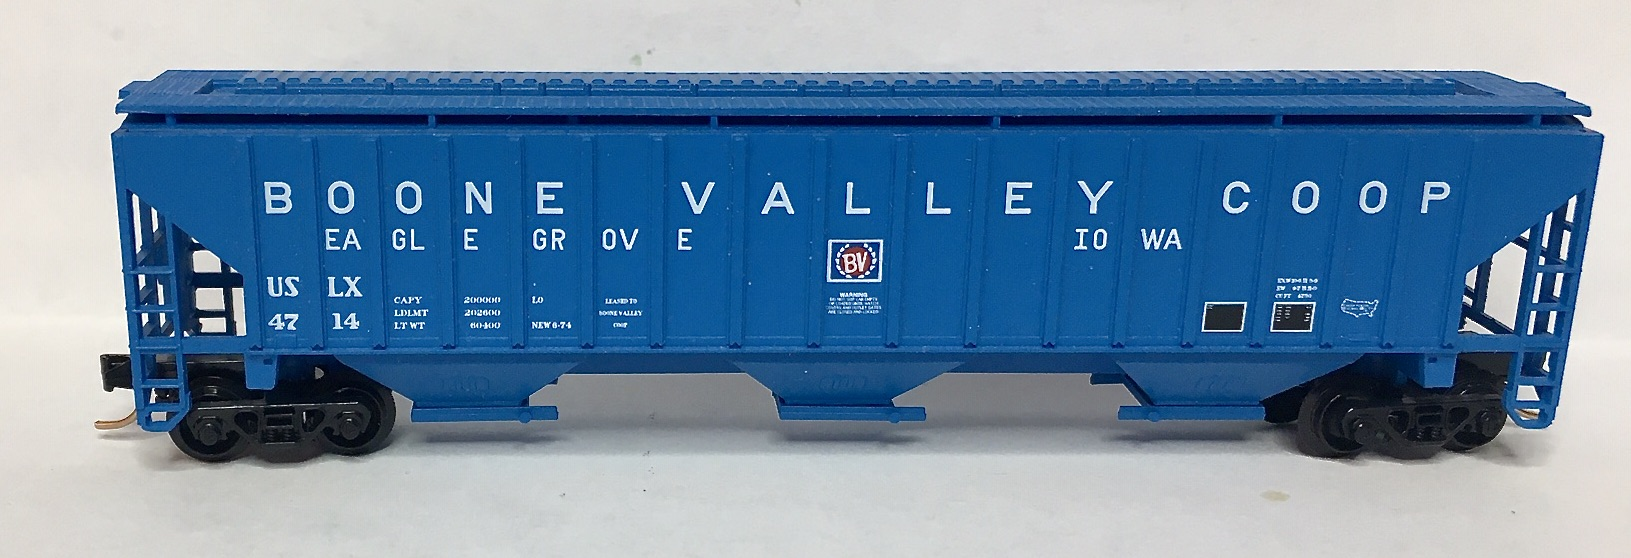 N Scale - Red Caboose - RN-15606-(  ) - Covered Hopper, 3-Bay, PS2-CD 4750 - Boone Valley Coop - 4714